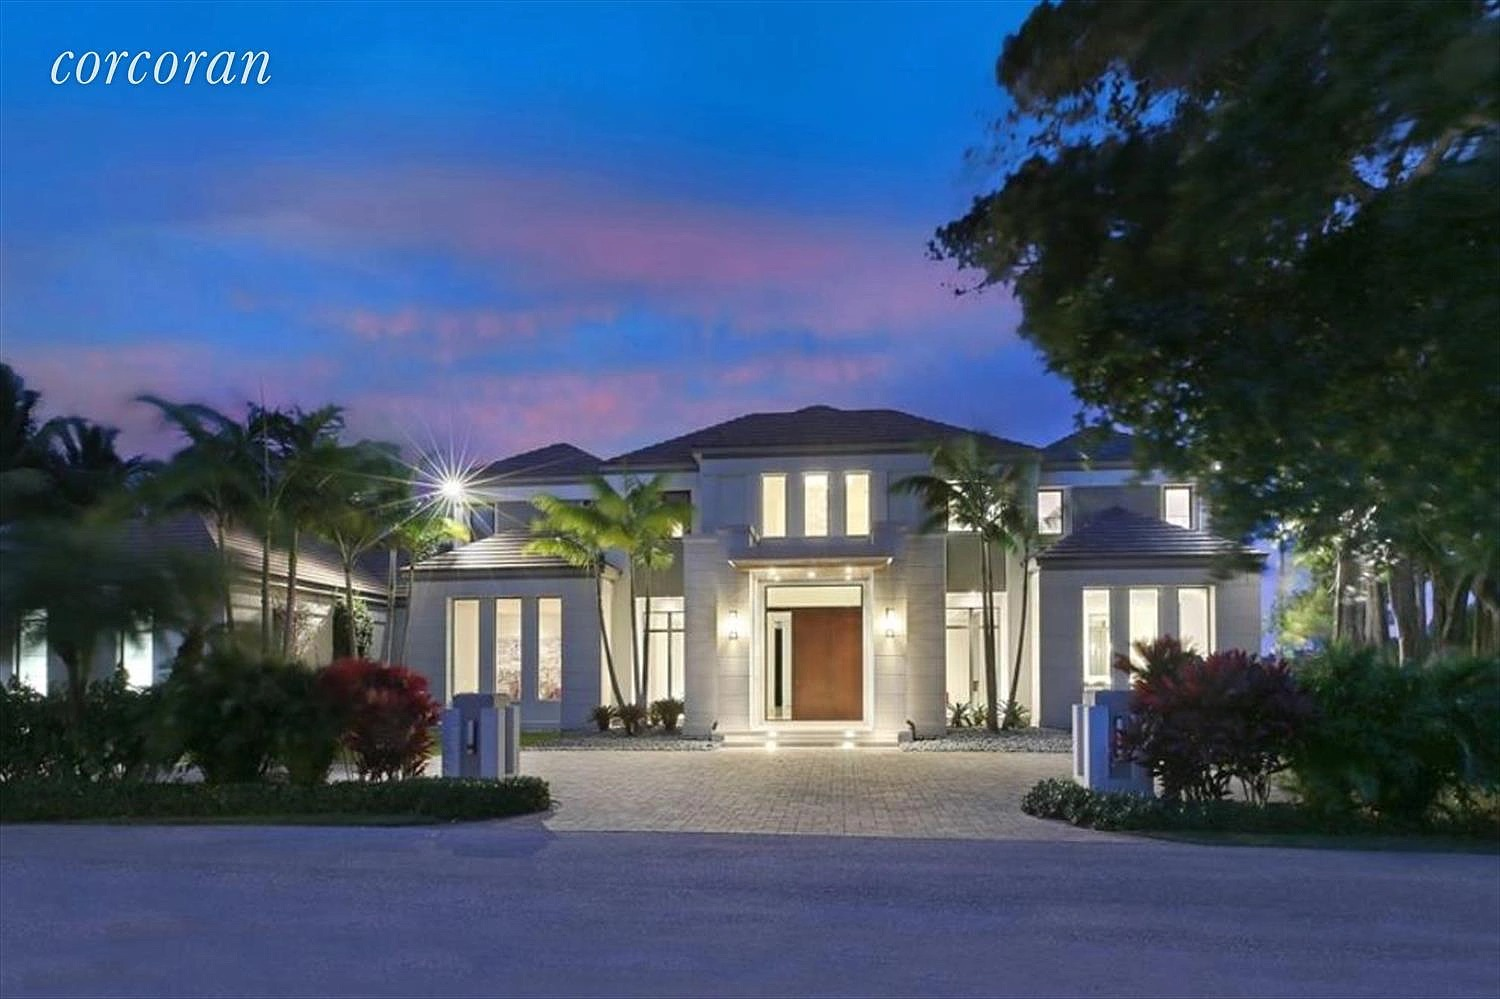 1540 Paslay Pl, Lantana, FL 33462 - $8,400,000 home for sale, house images, photos and pics gallery